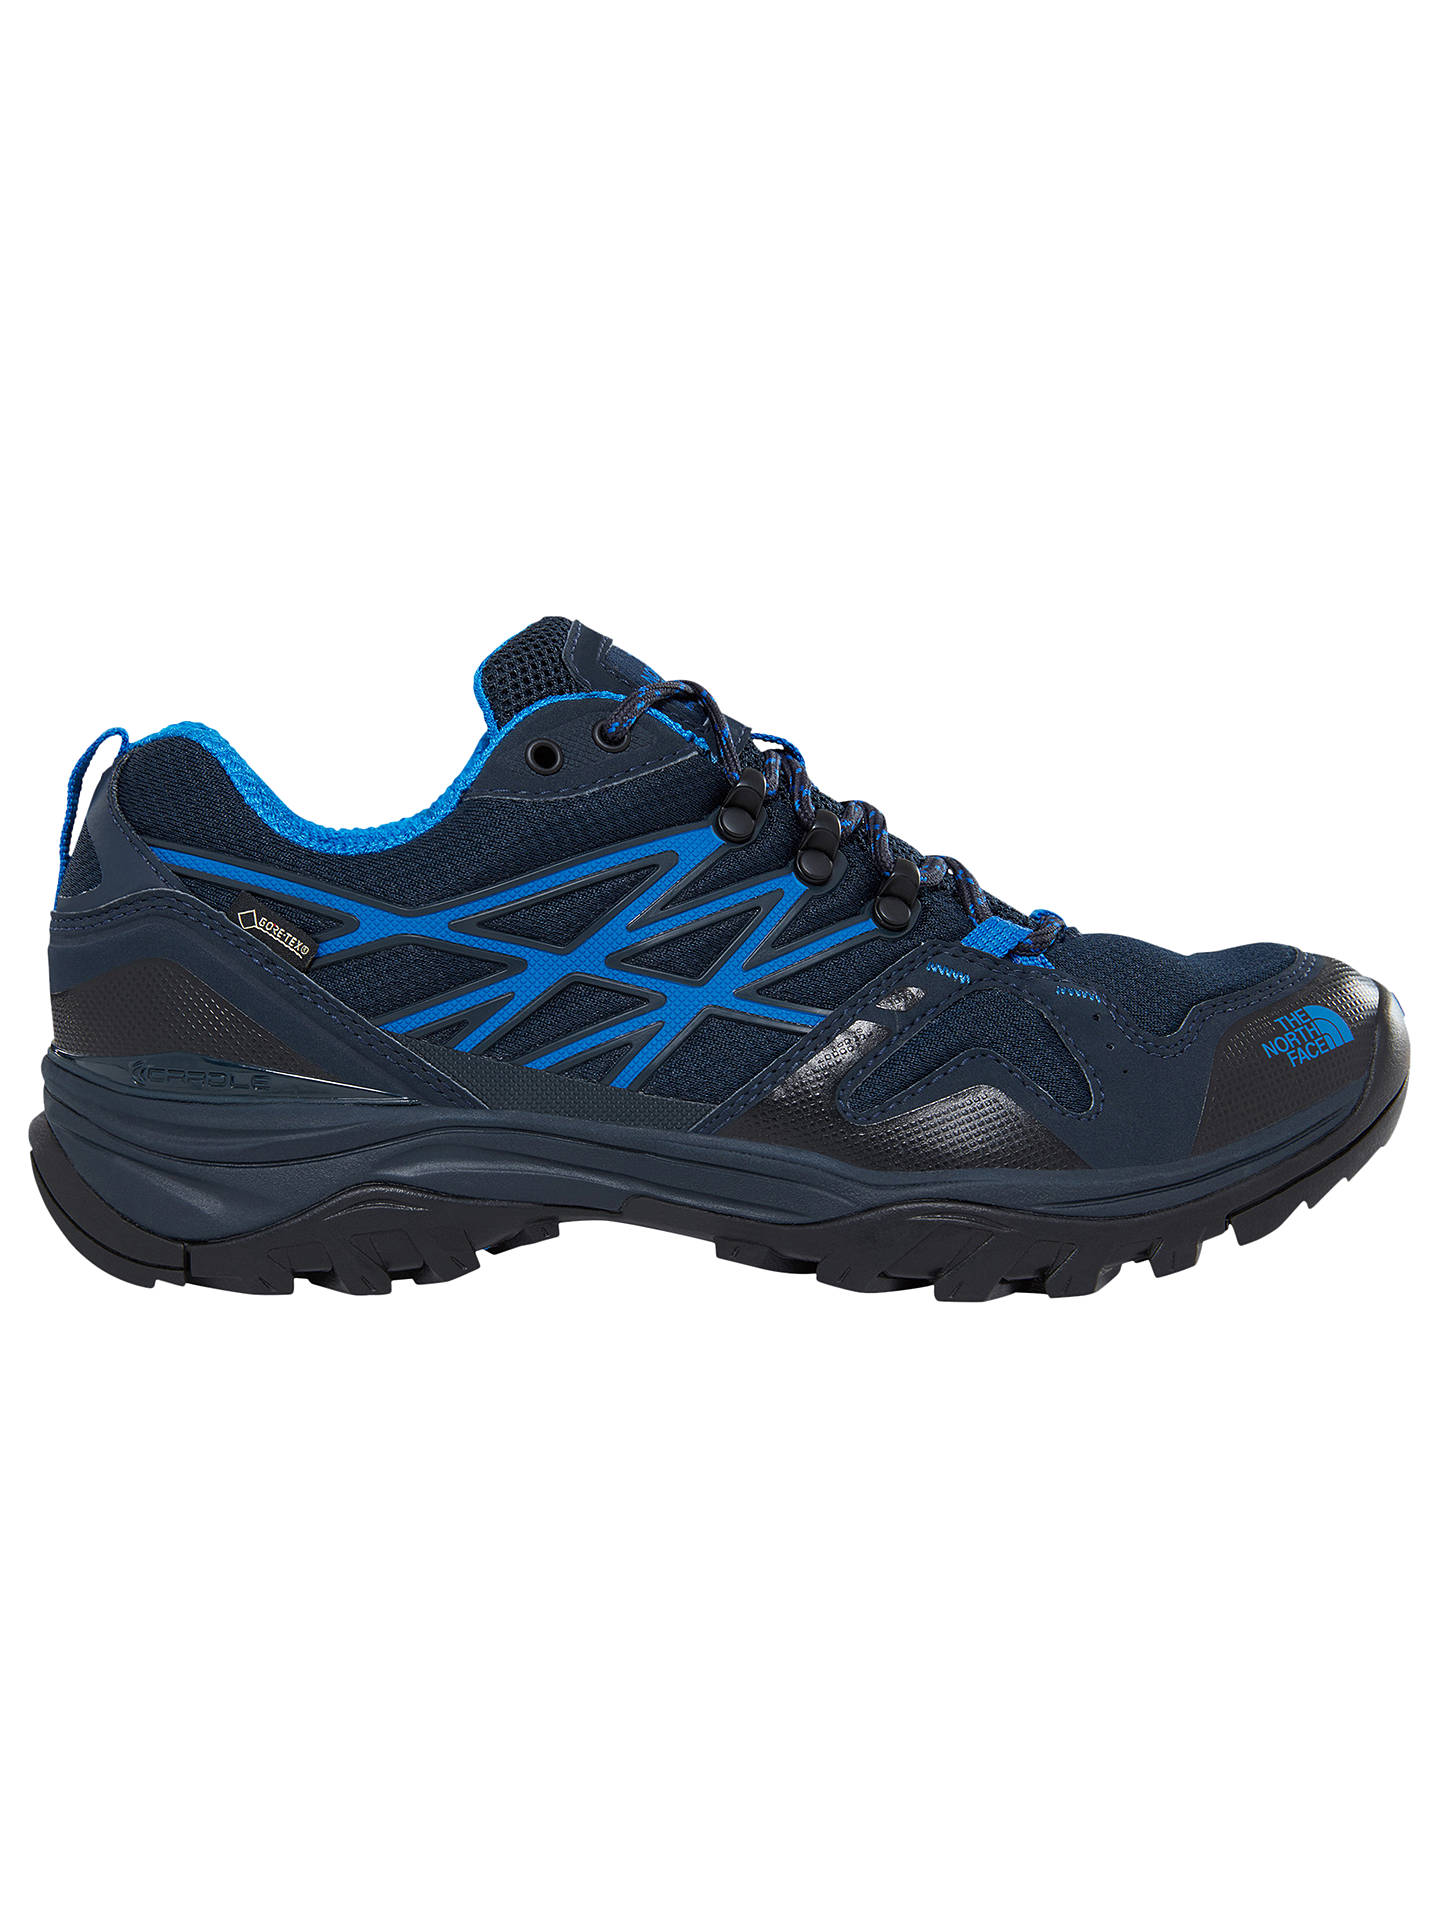 166bf014e95 The North Face Fastpack GORE-TEX Men's Hiking Shoes, Navy at John ...